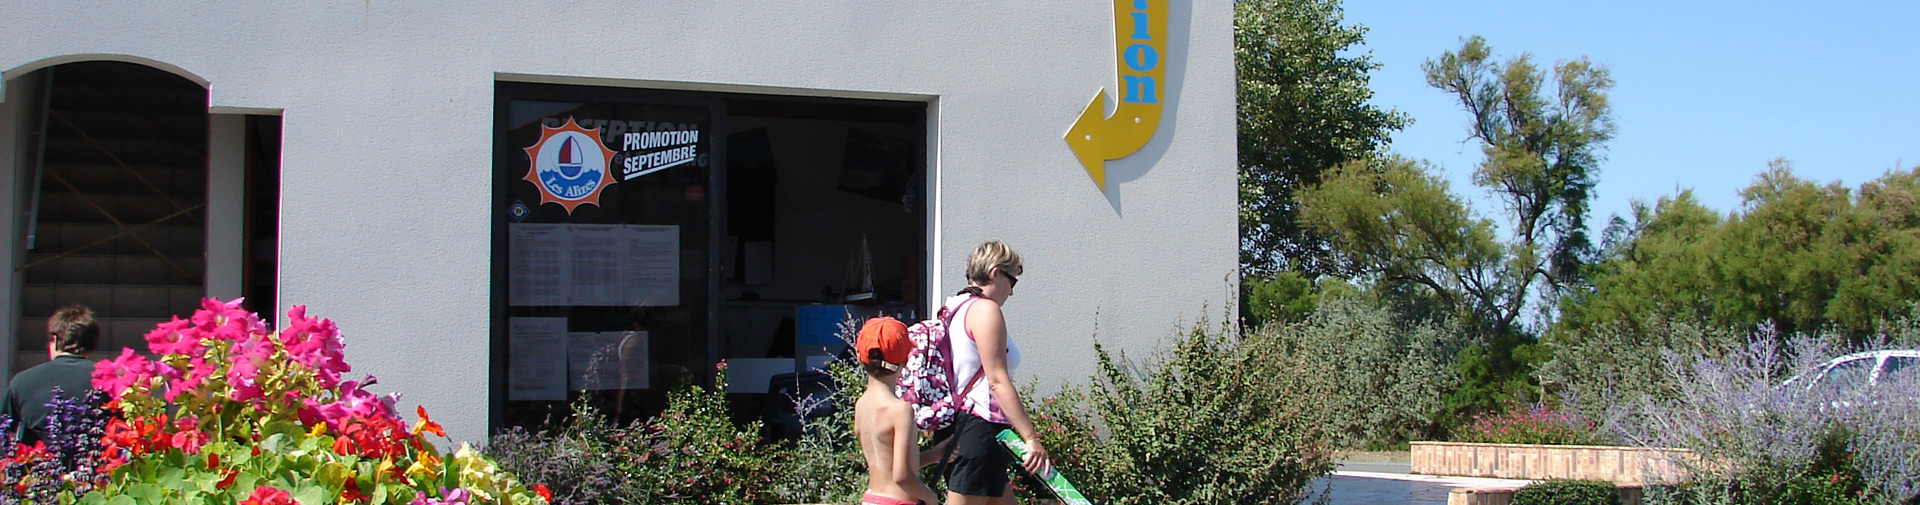 reception-du-camping-a-saint-denis-d-oleron-services_Services